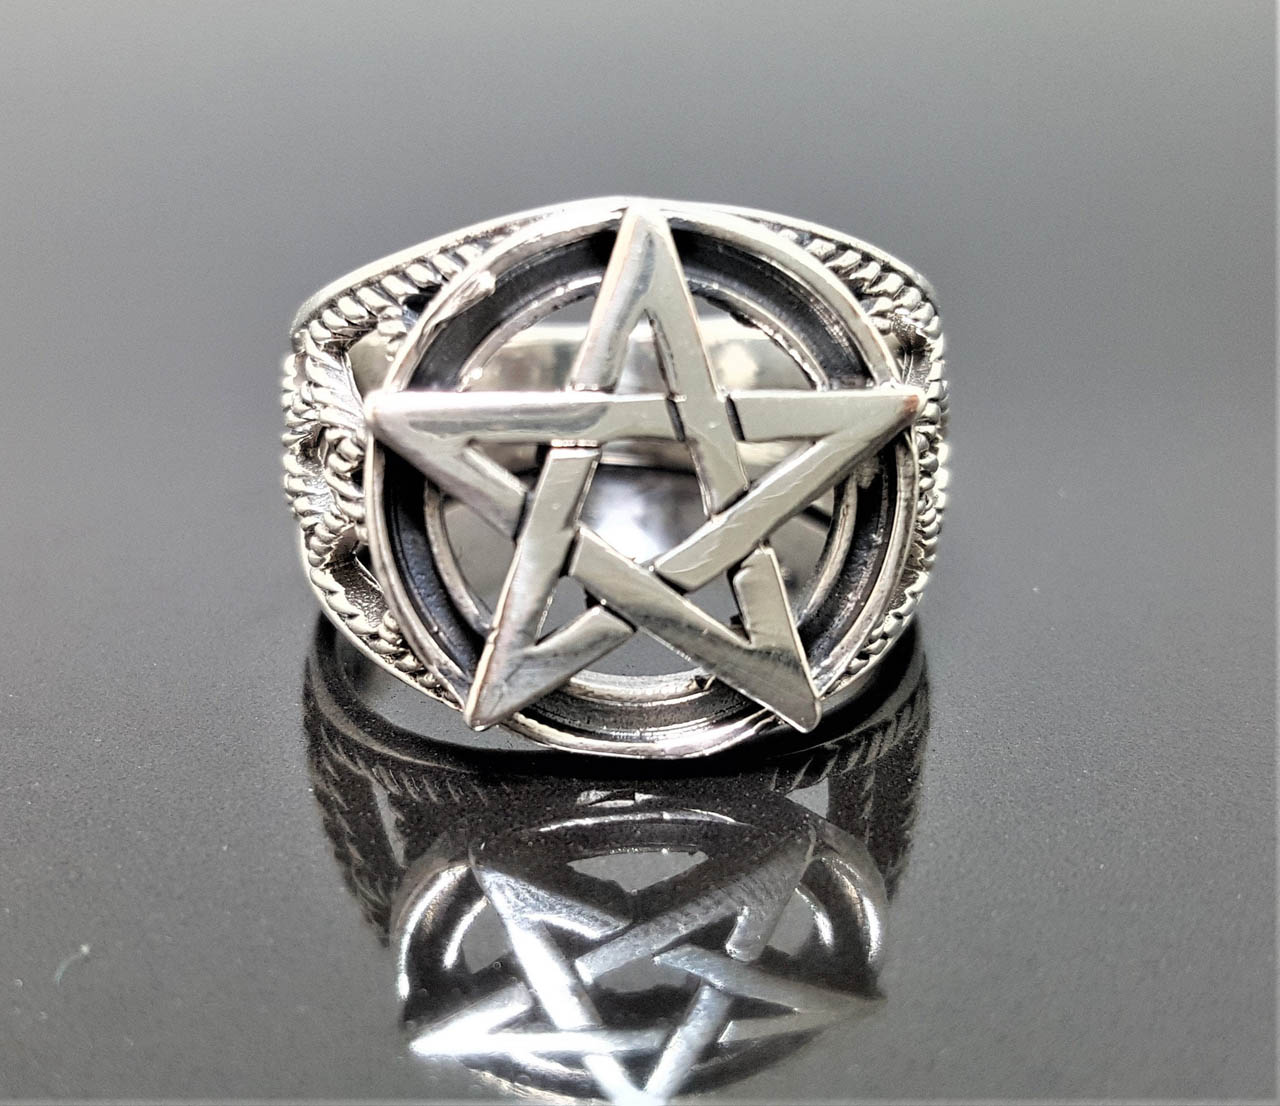 Pentagram Ring STERLING SILVER 925 Star Pentacle Sacred Symbols 5 pointed star Talisman Protective Amulet Exclusive Gift